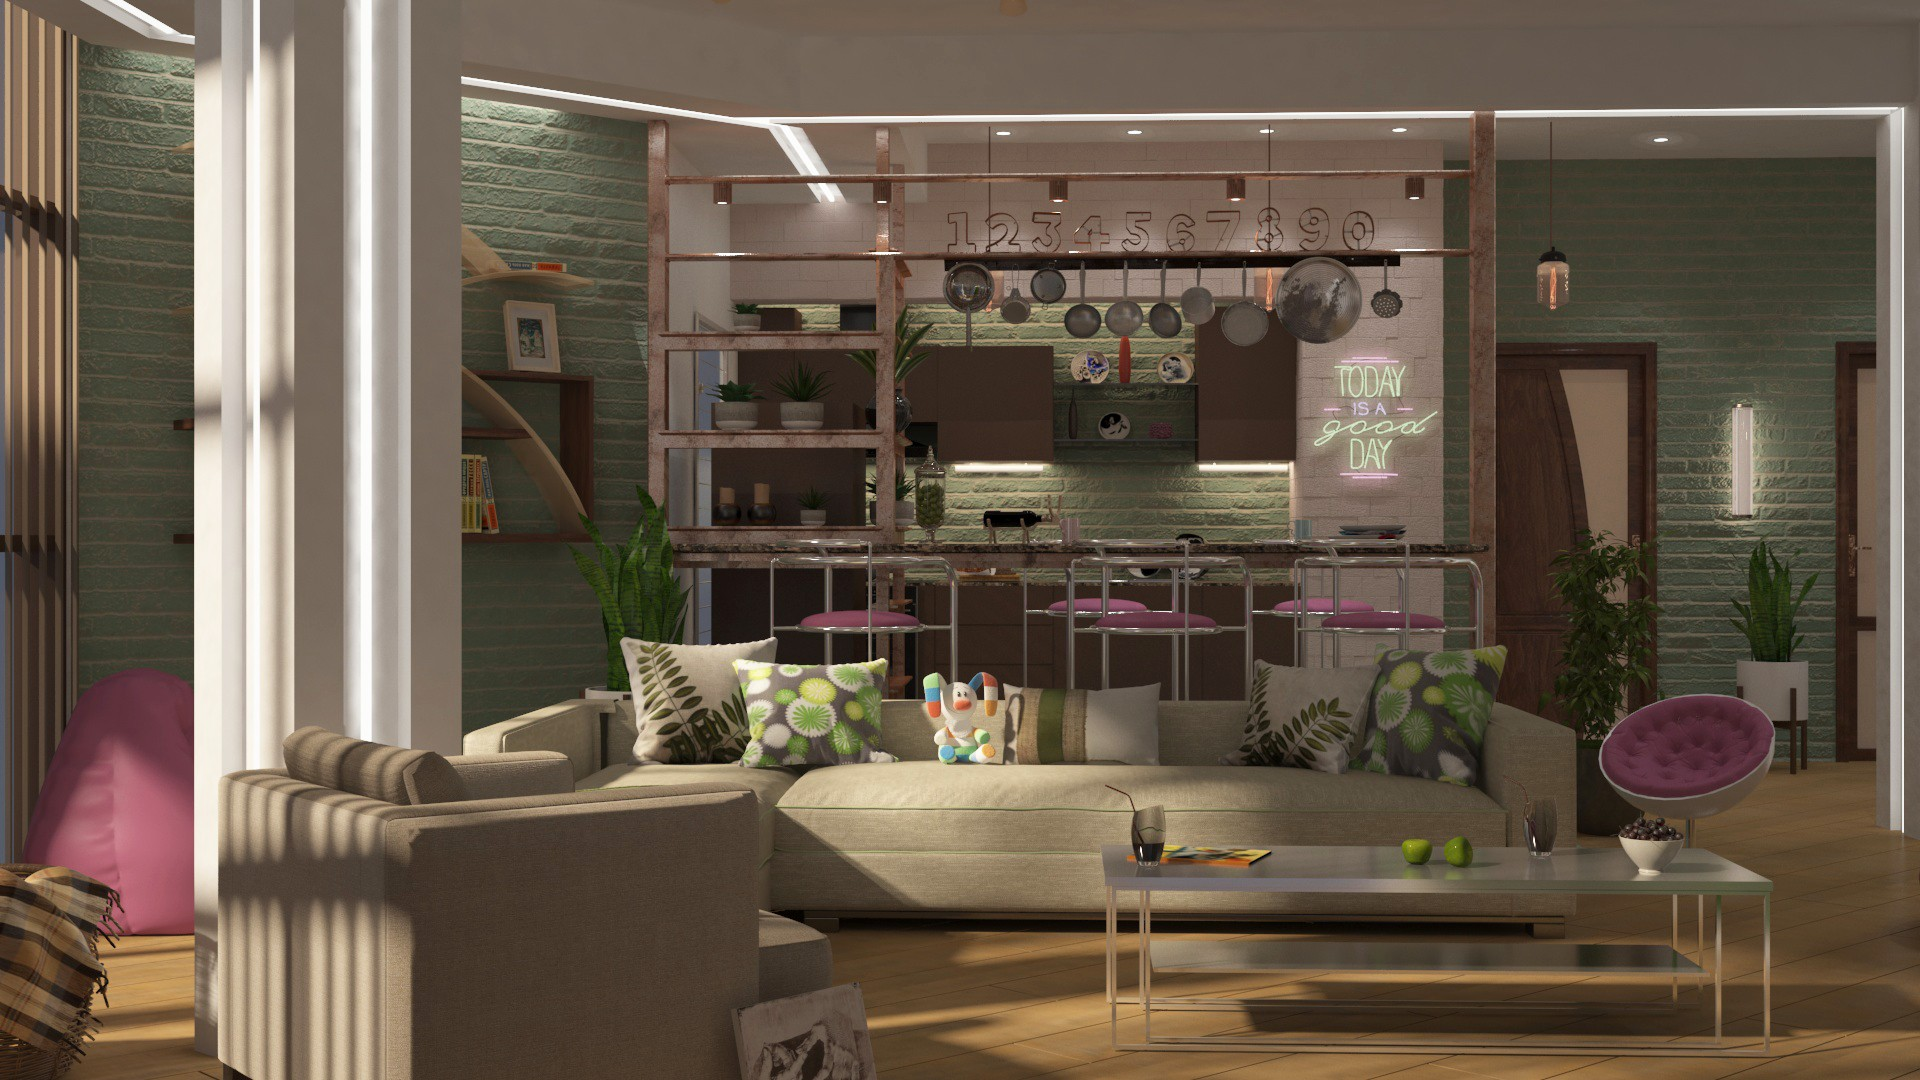 my work with the interior in 3d max vray 3.0 image